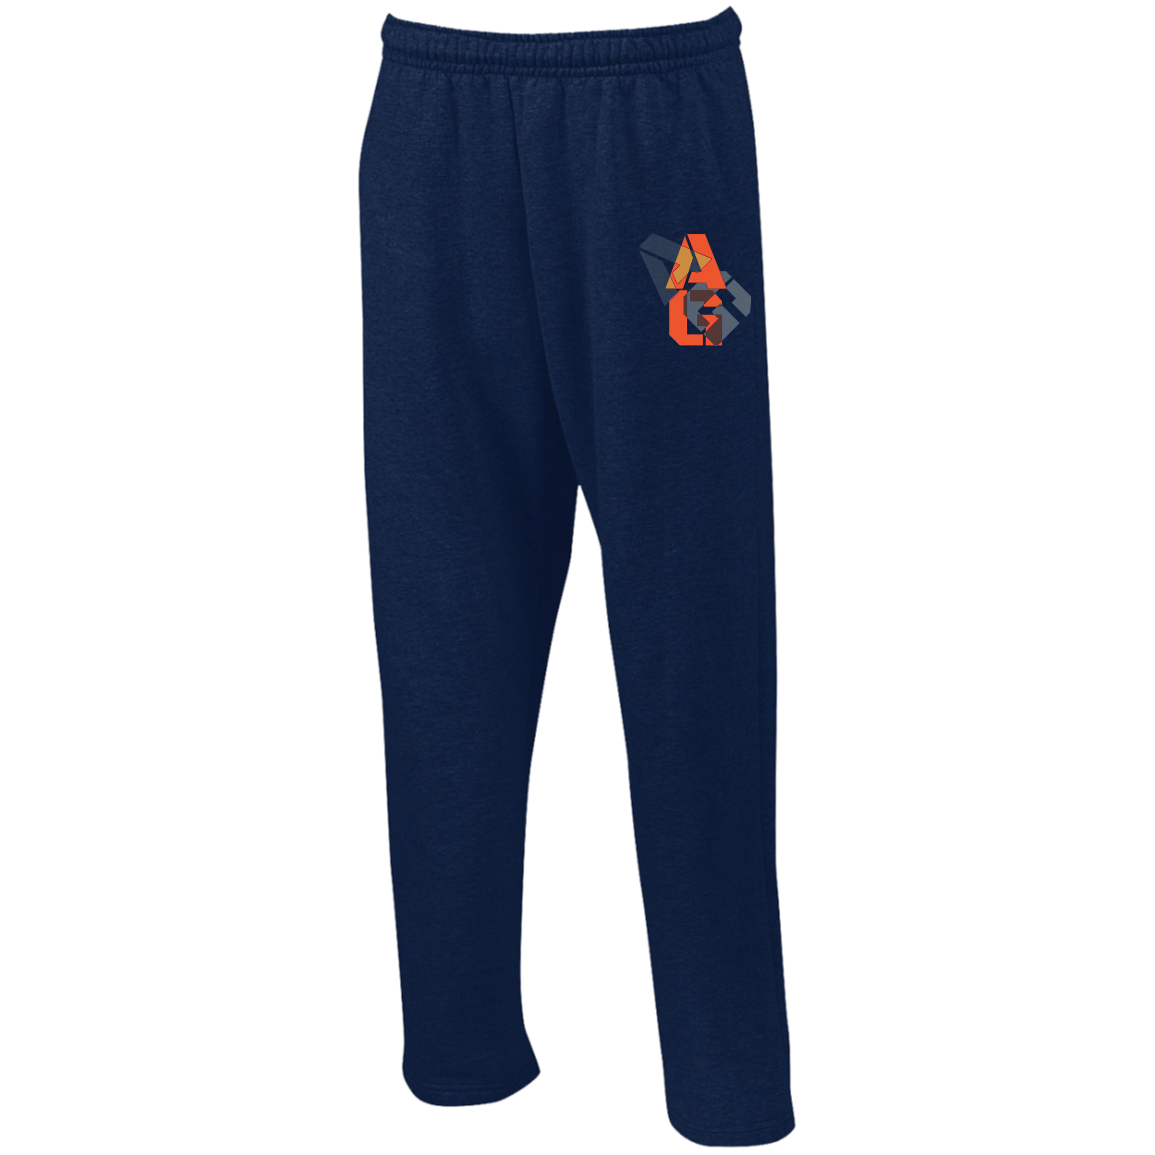 G123 Gildan Open Bottom Sweatpants with Pockets